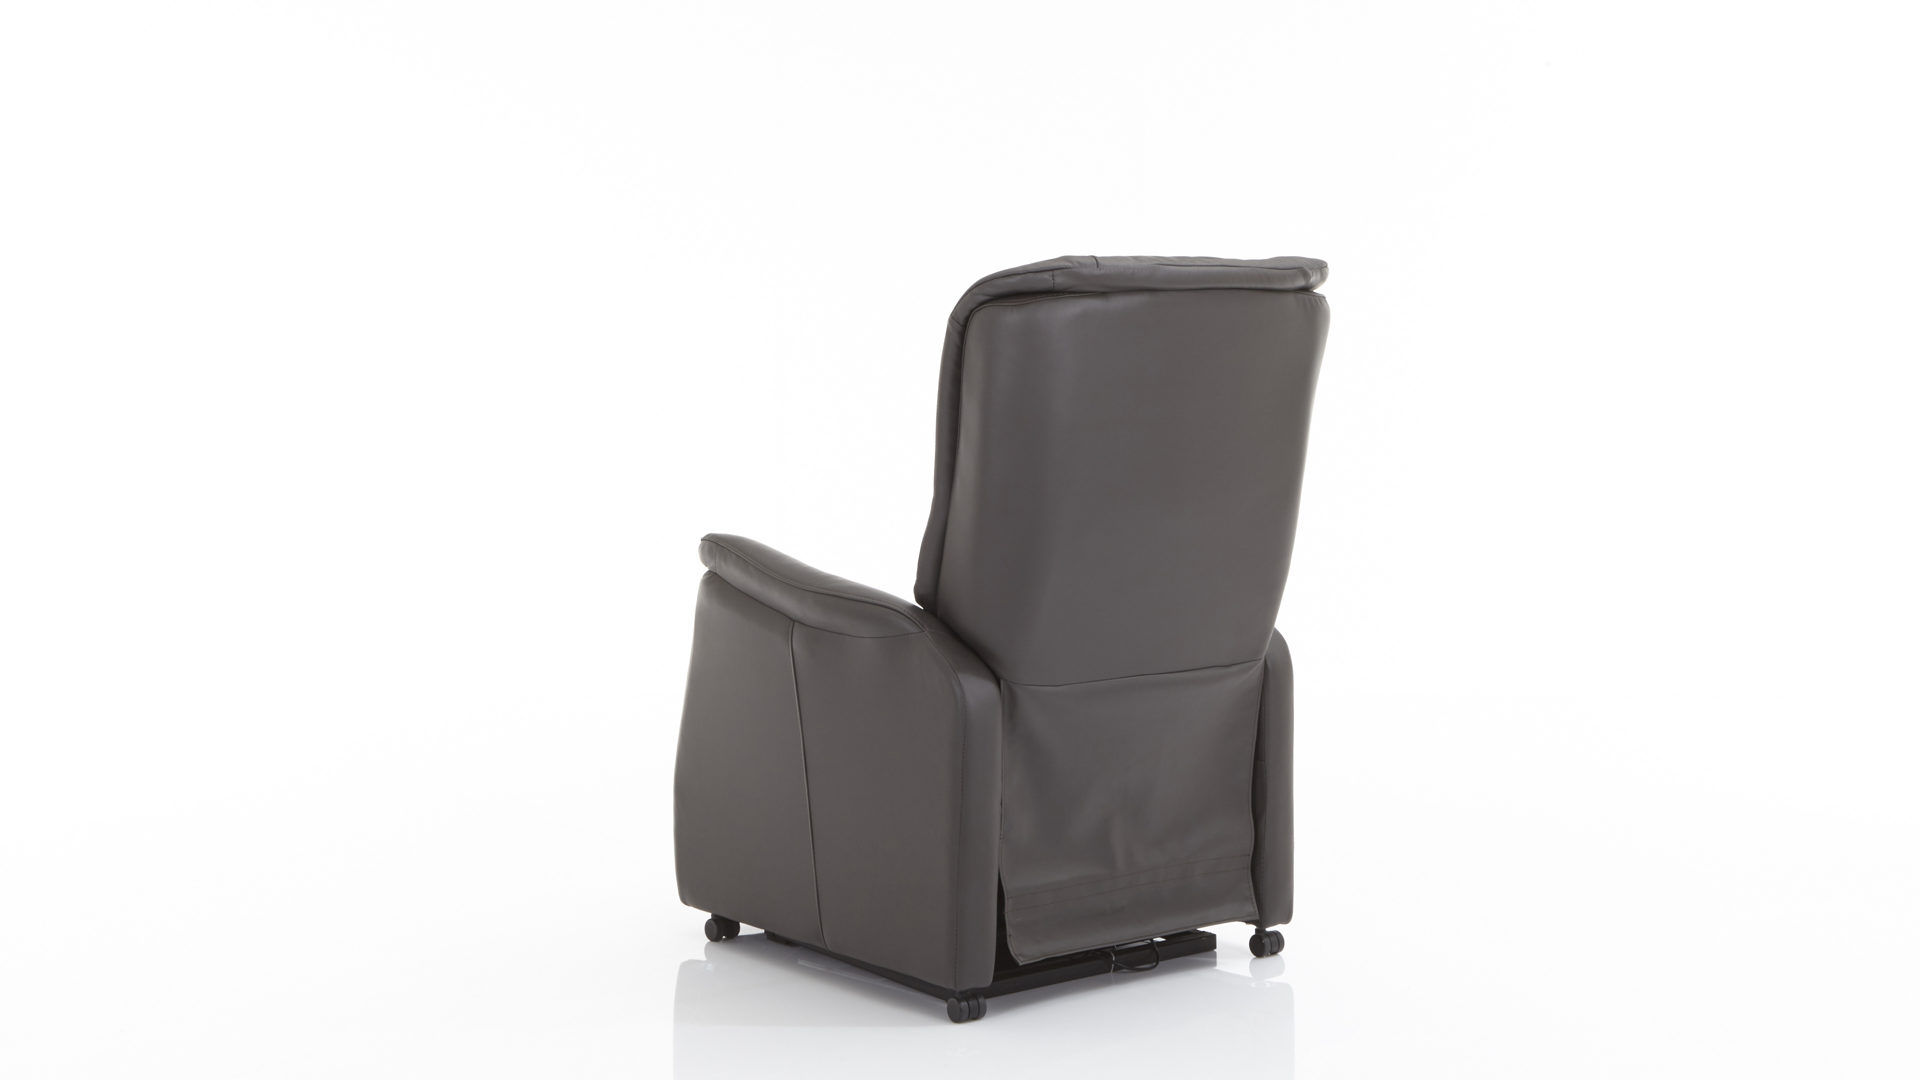 Duo Collection Tv Sessel Trop Möbelabholmarkt Gmbh Möbel A Z Sessel Hocker